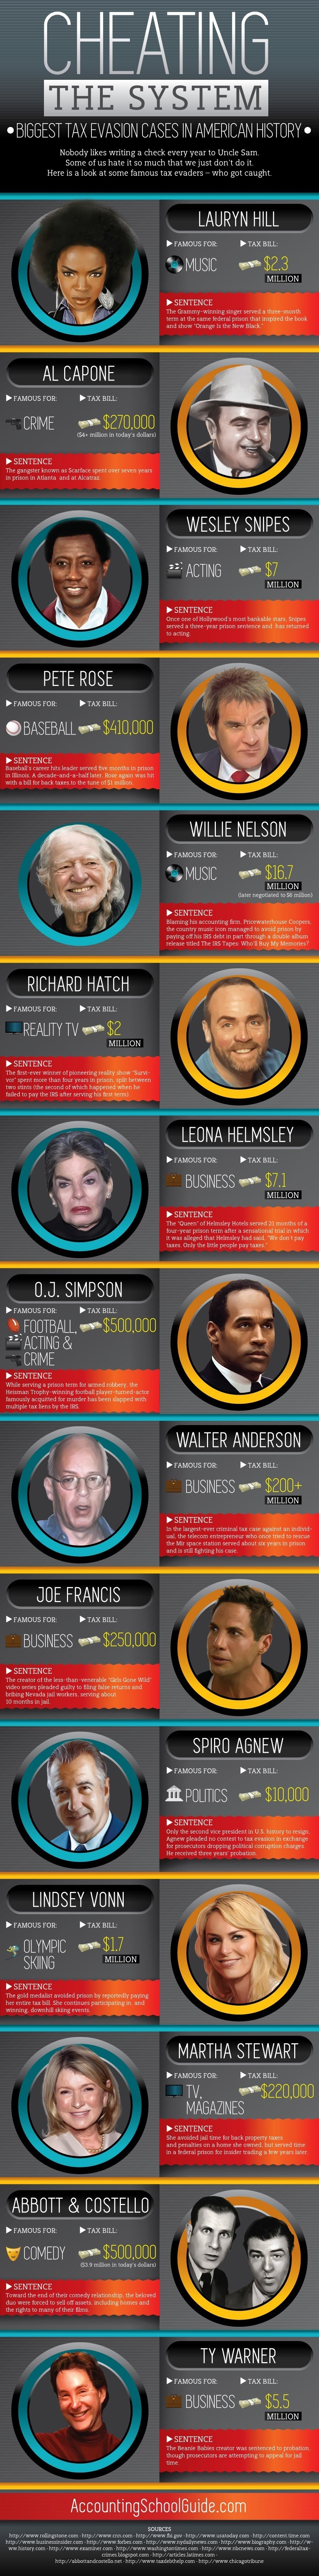 Biggest Tax Evasion Cases in American History #infographic